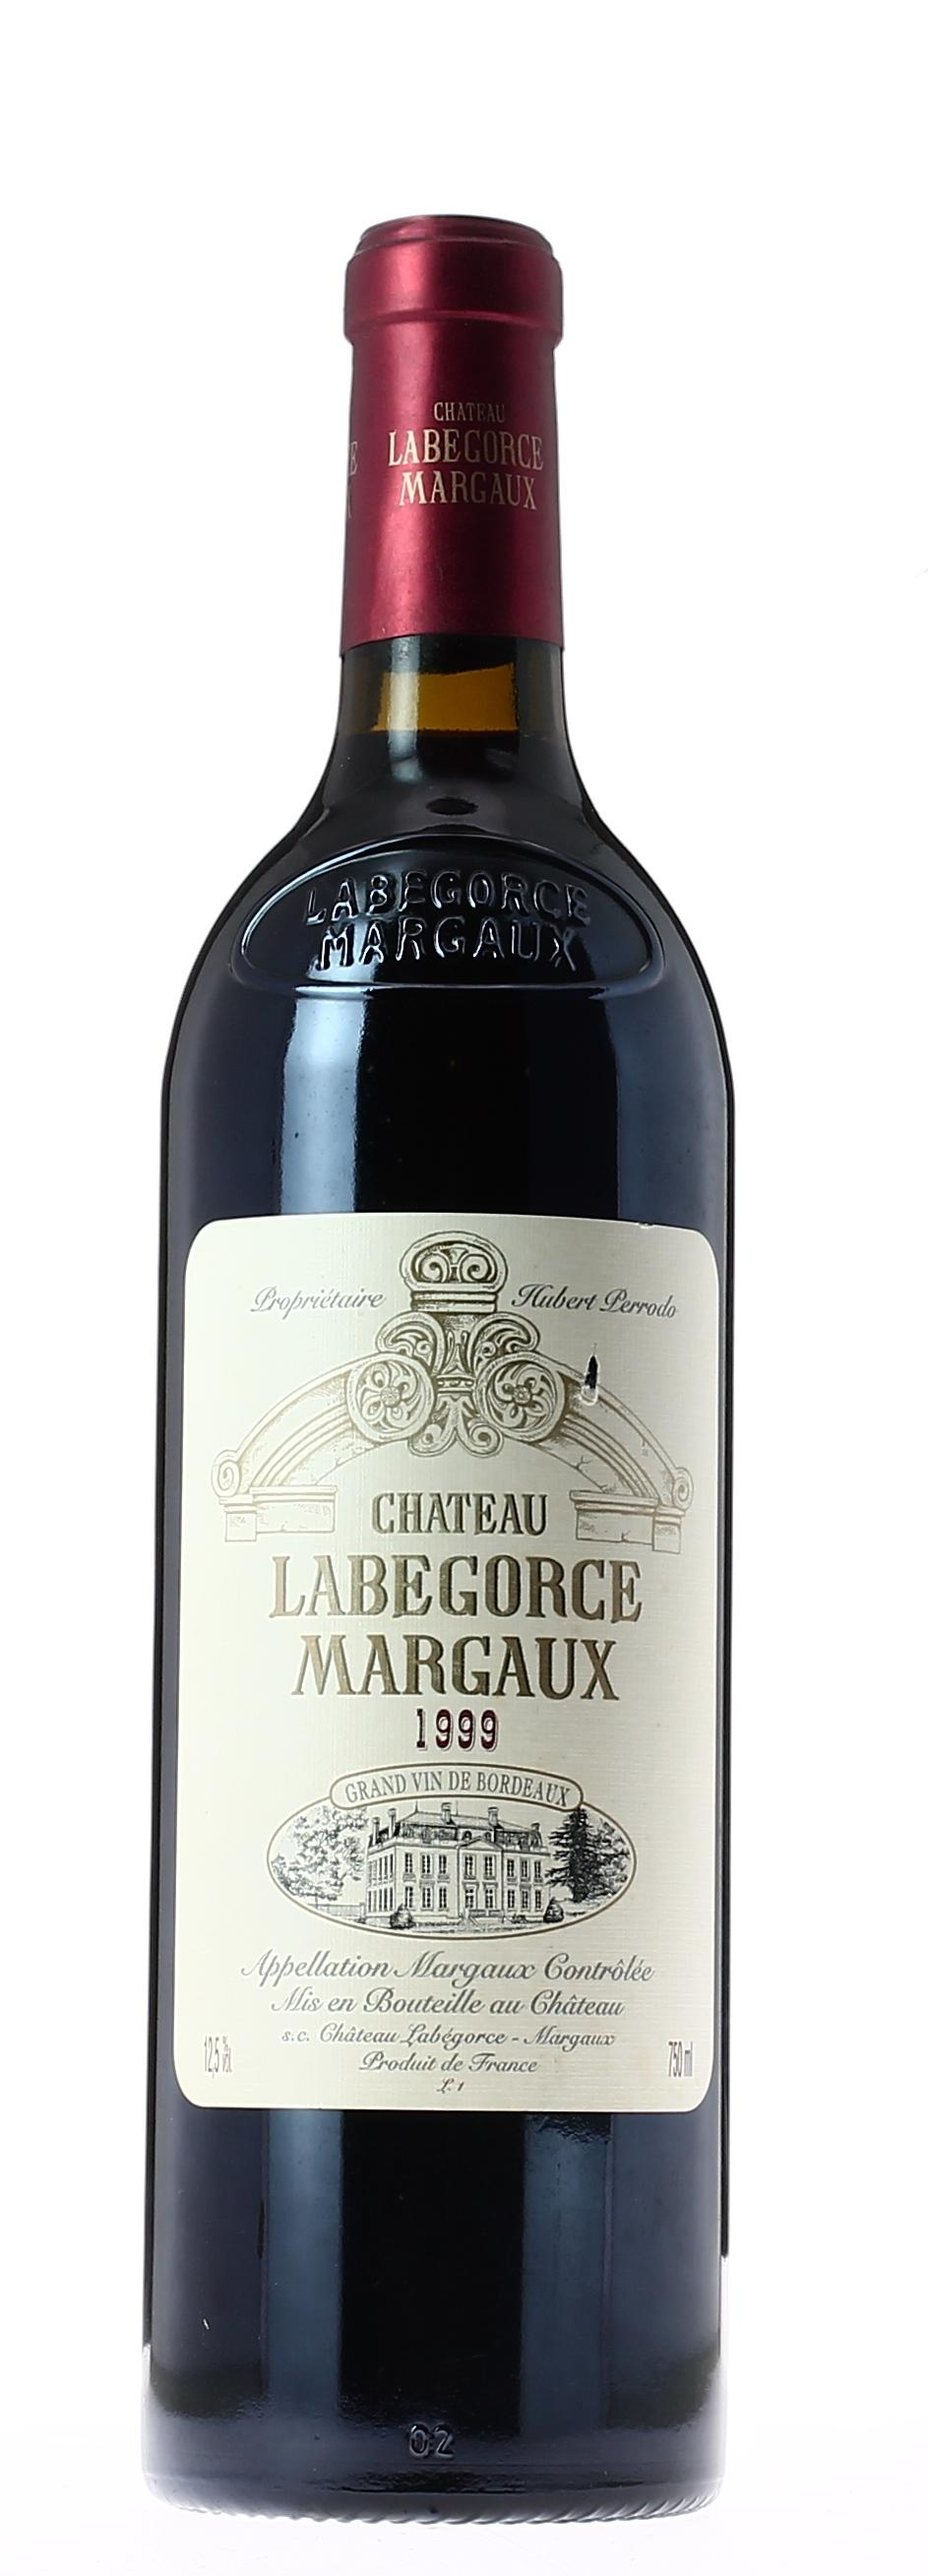 chateau labegorce margaux 1999 vin rouge. Black Bedroom Furniture Sets. Home Design Ideas